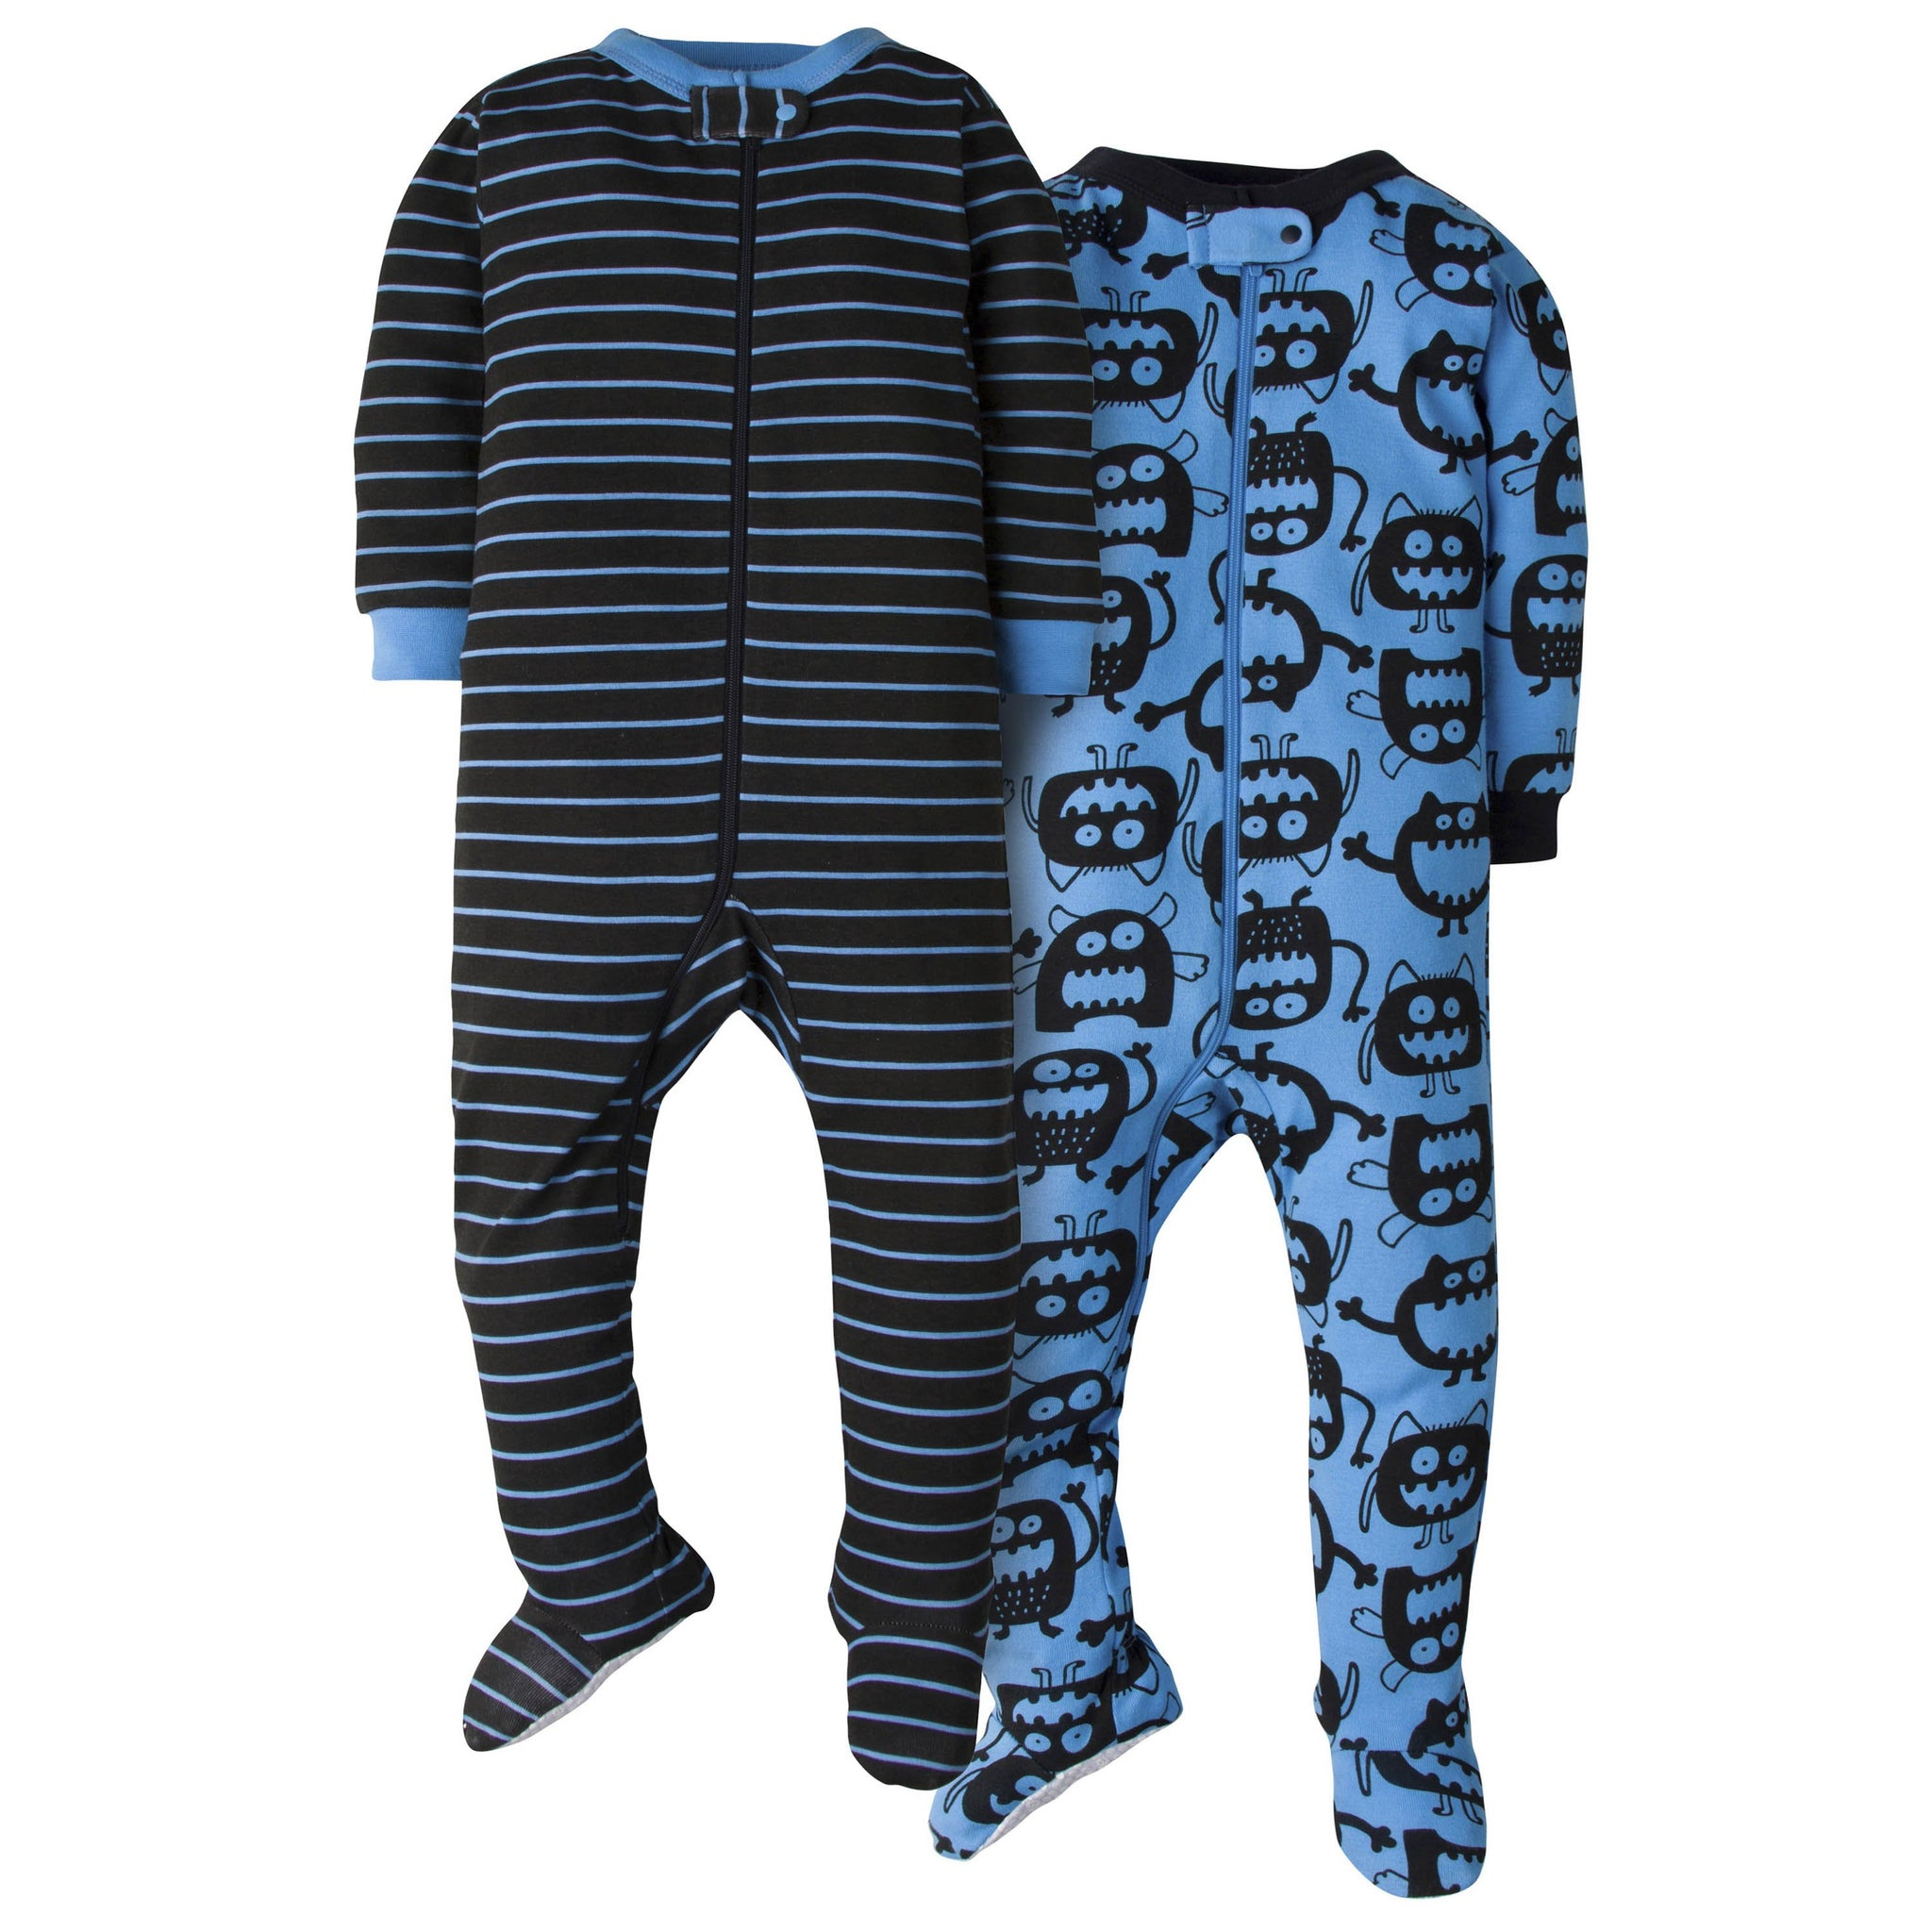 2-Pack Baby Boys Footed Union Suits - Not Tired